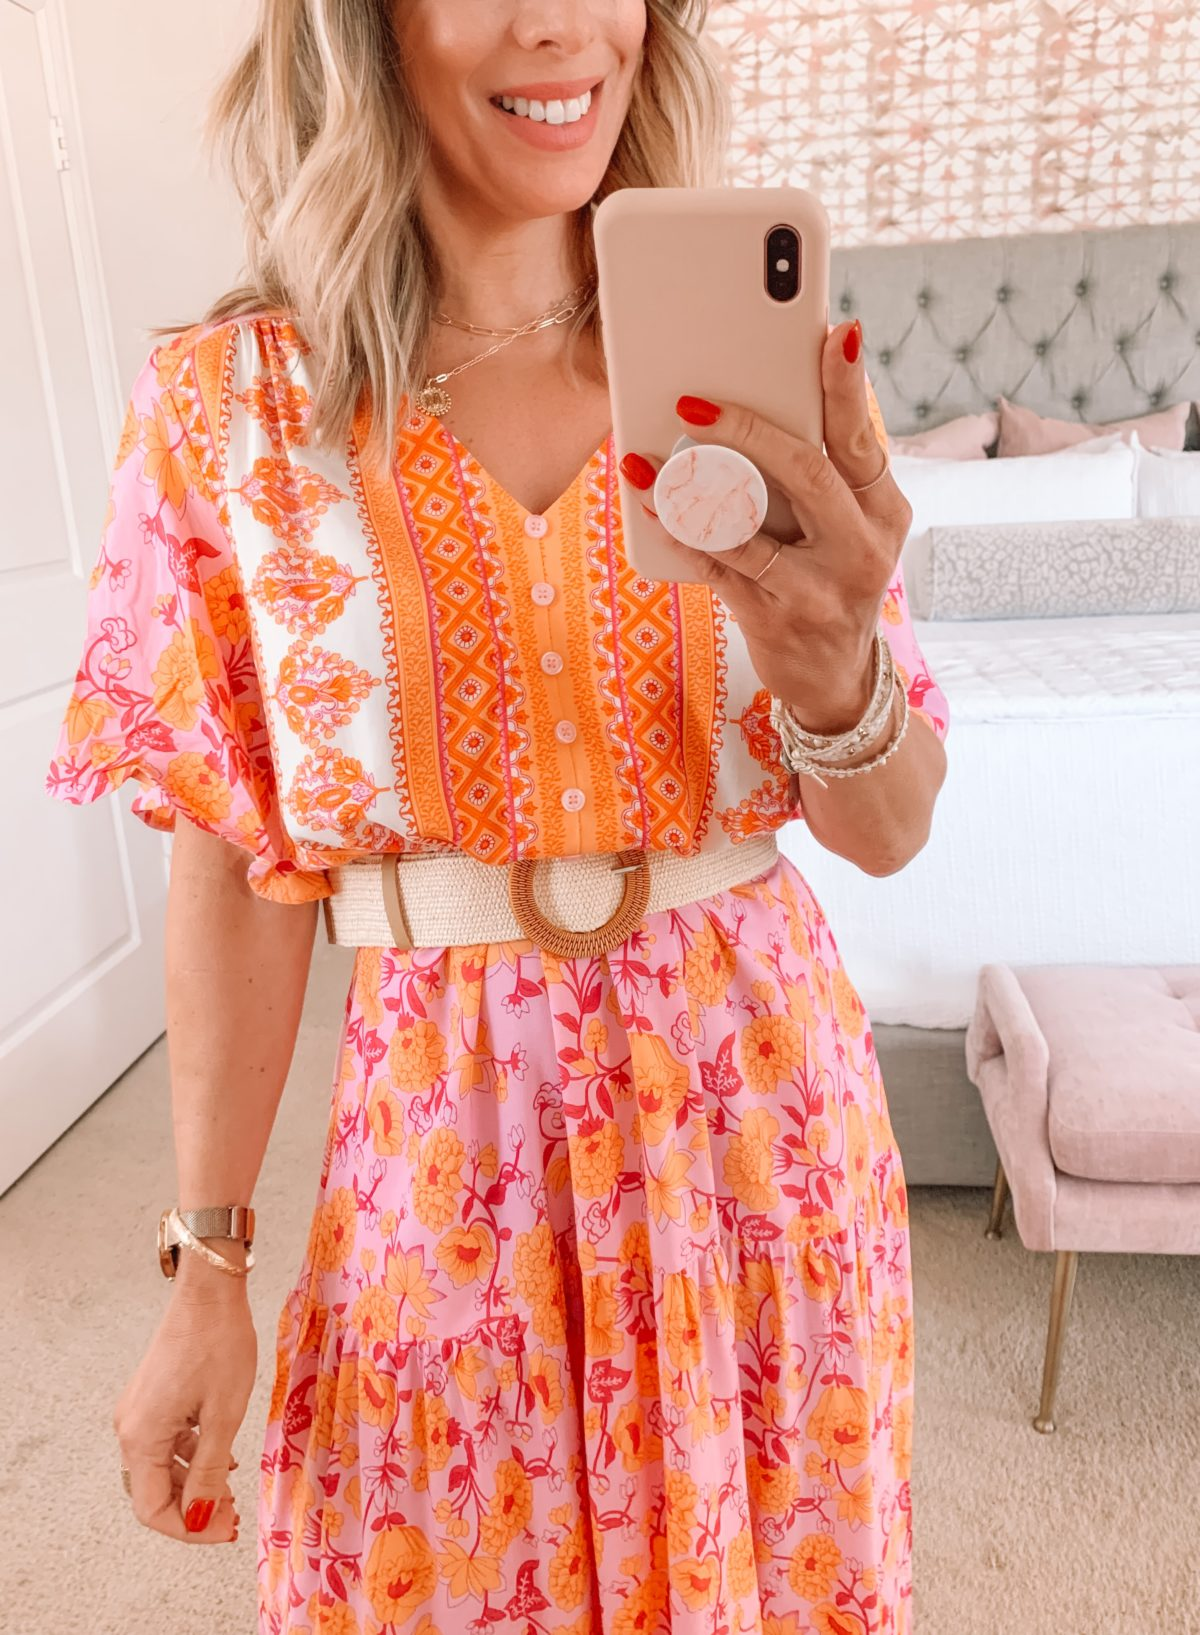 Amazon Fashion Faves, Boho Orange Dress, Belt, Sandals